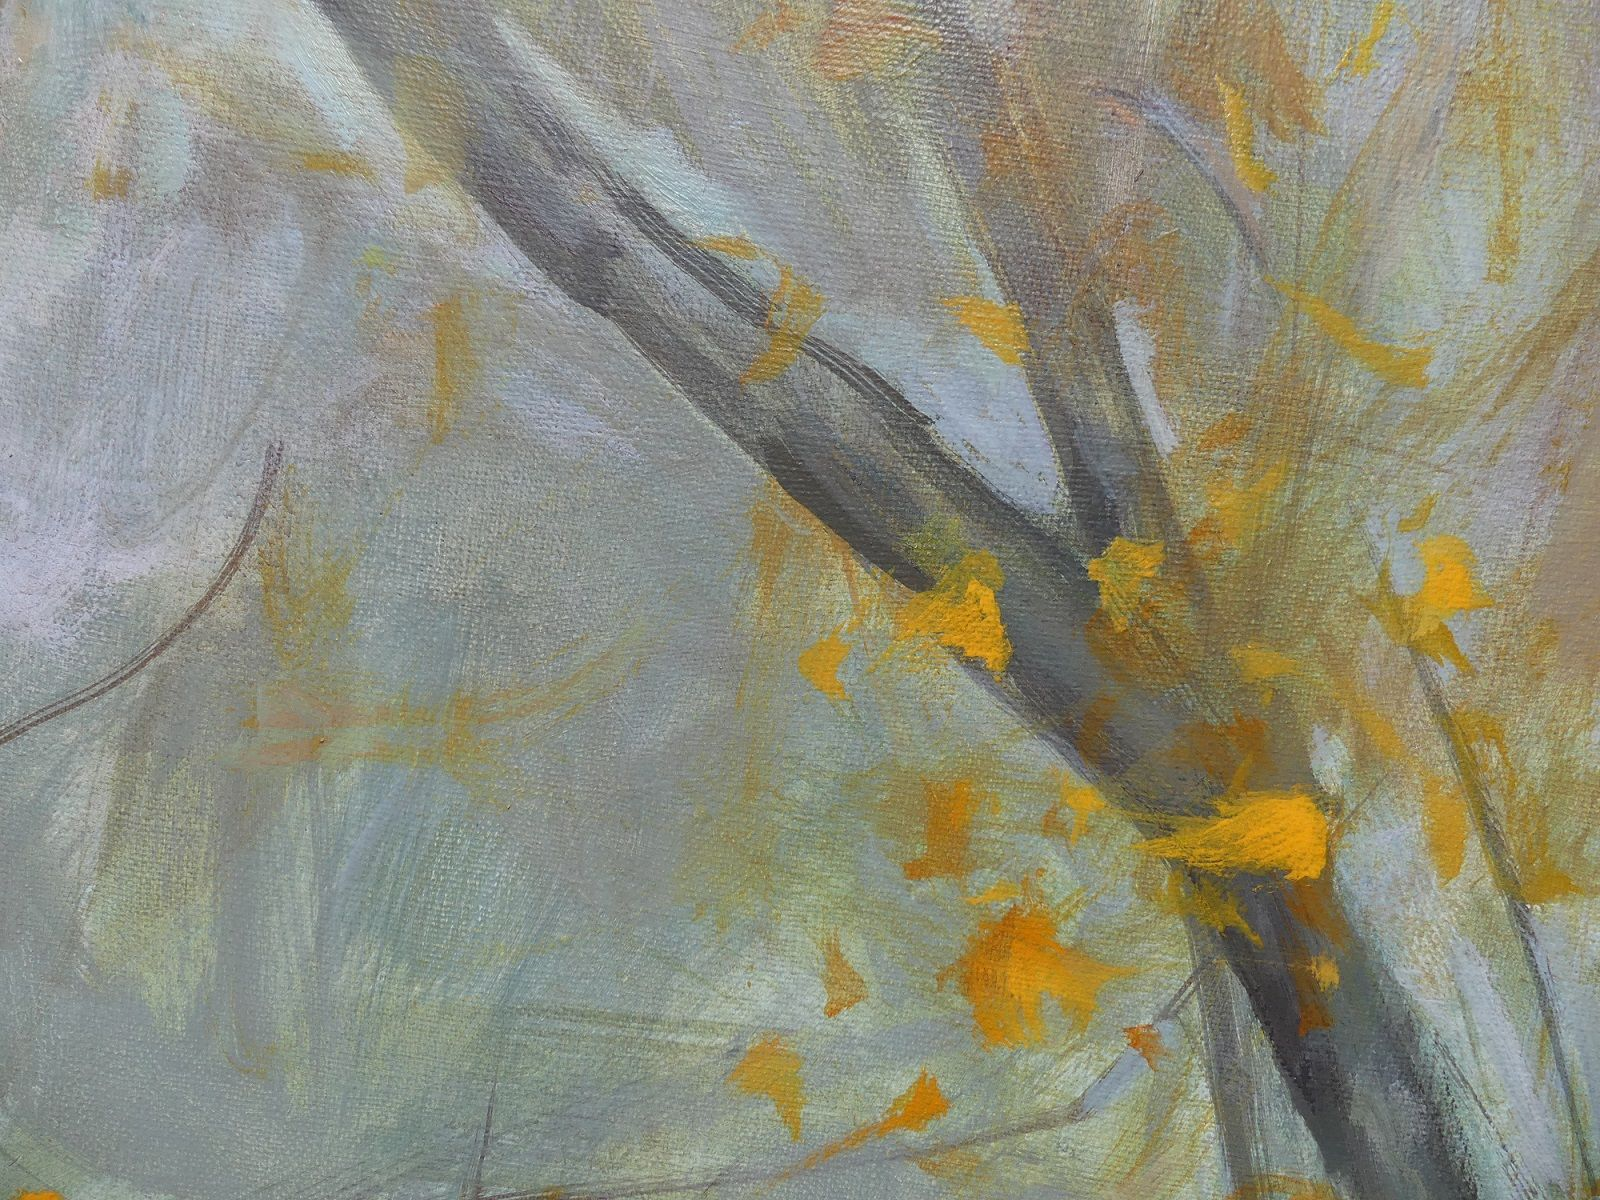 Aspens' and Willows' Branches in Autumn ,Valérie de Sarrieu,Contemporary painting, detail 2